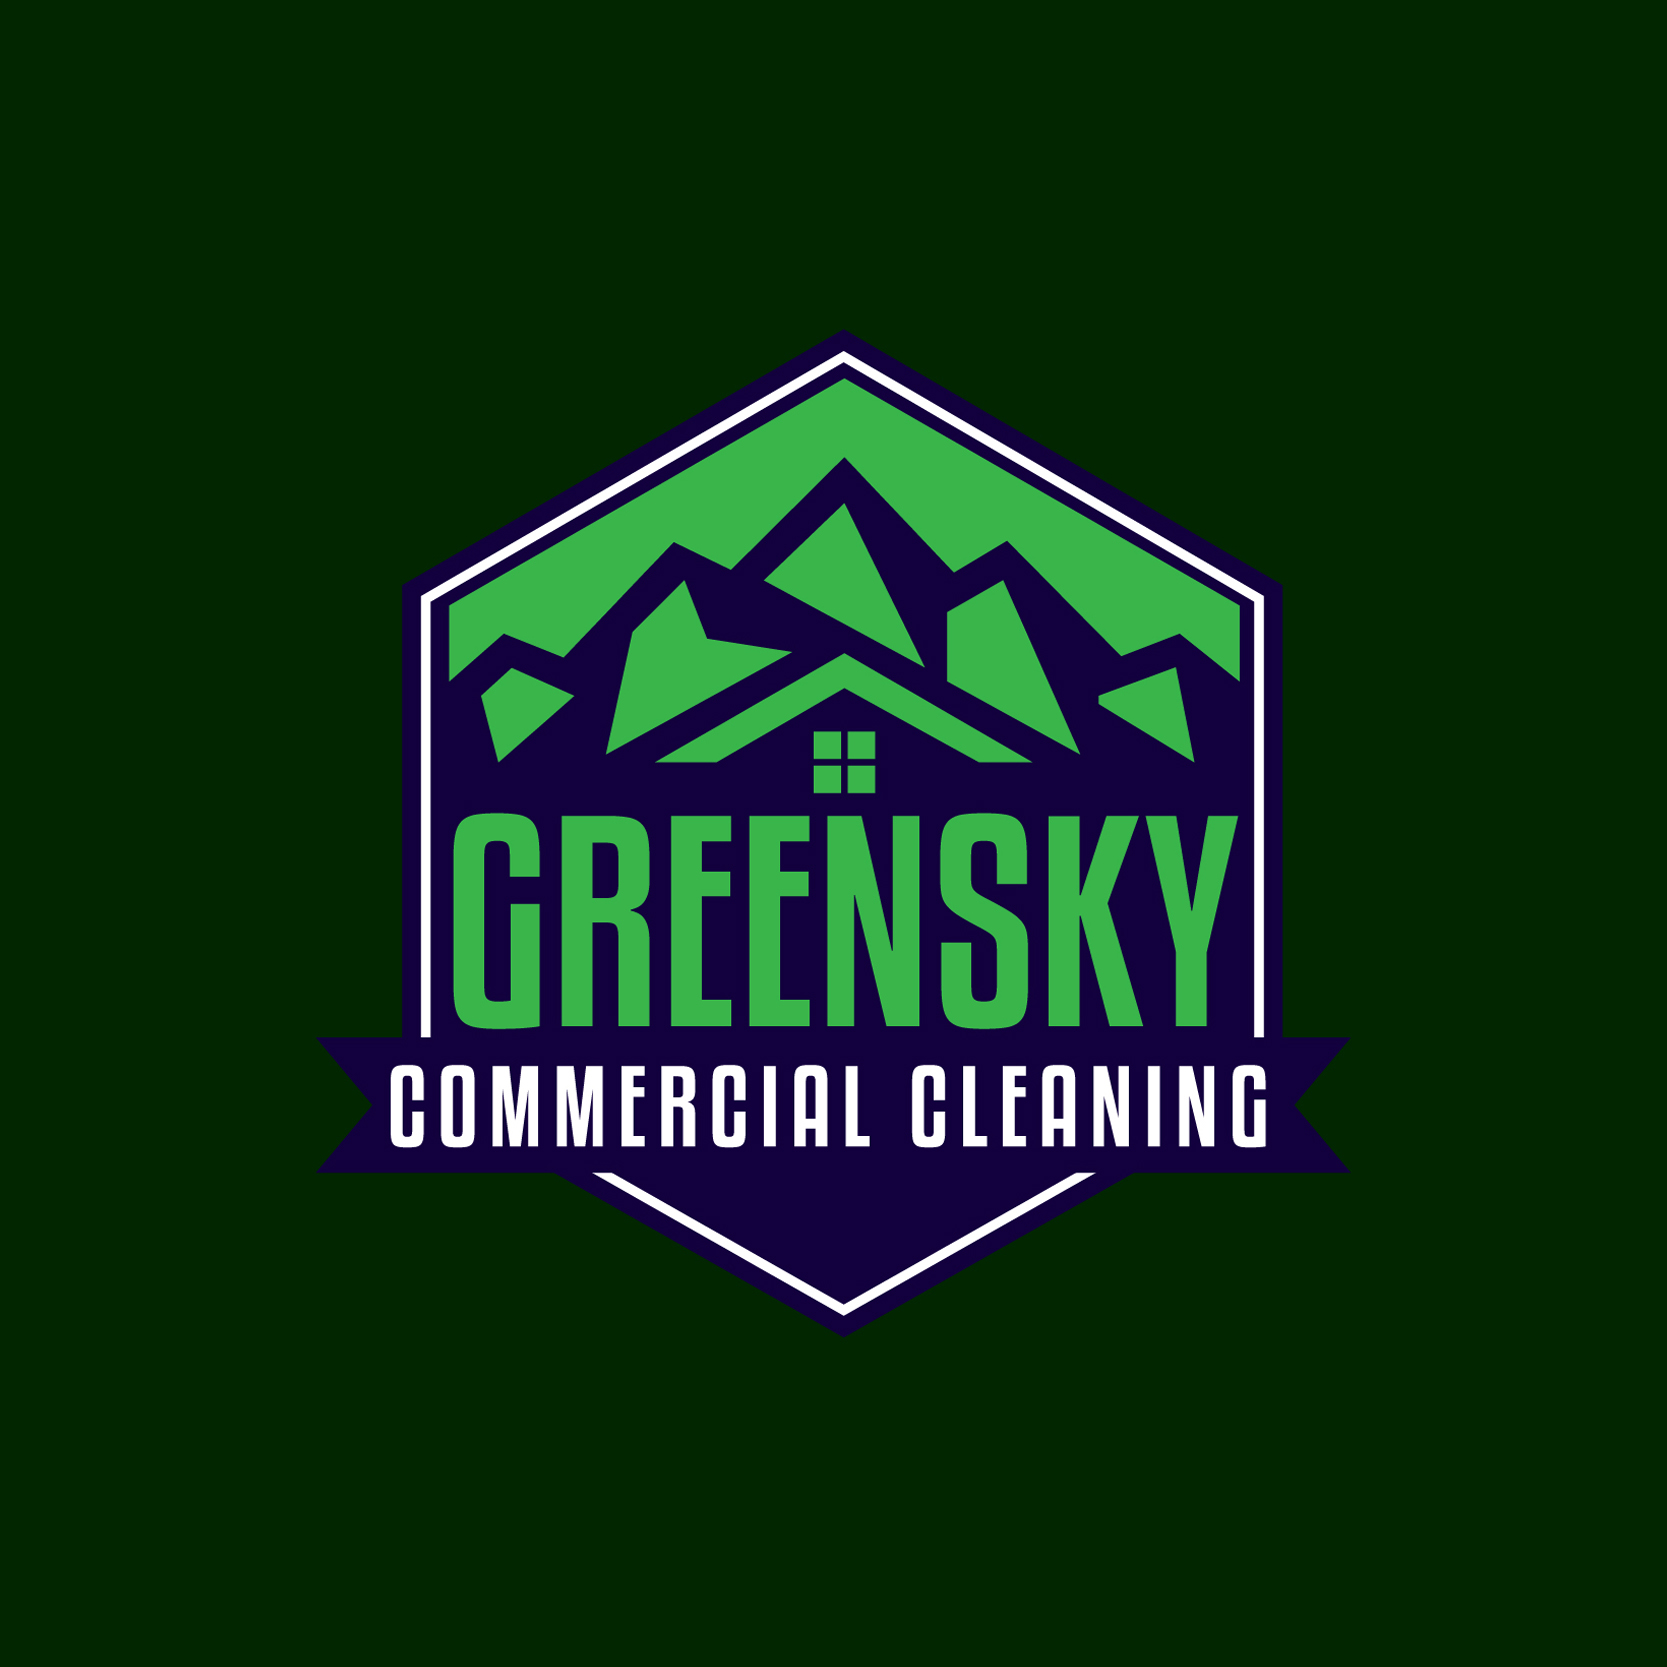 Cleaning Company Logos